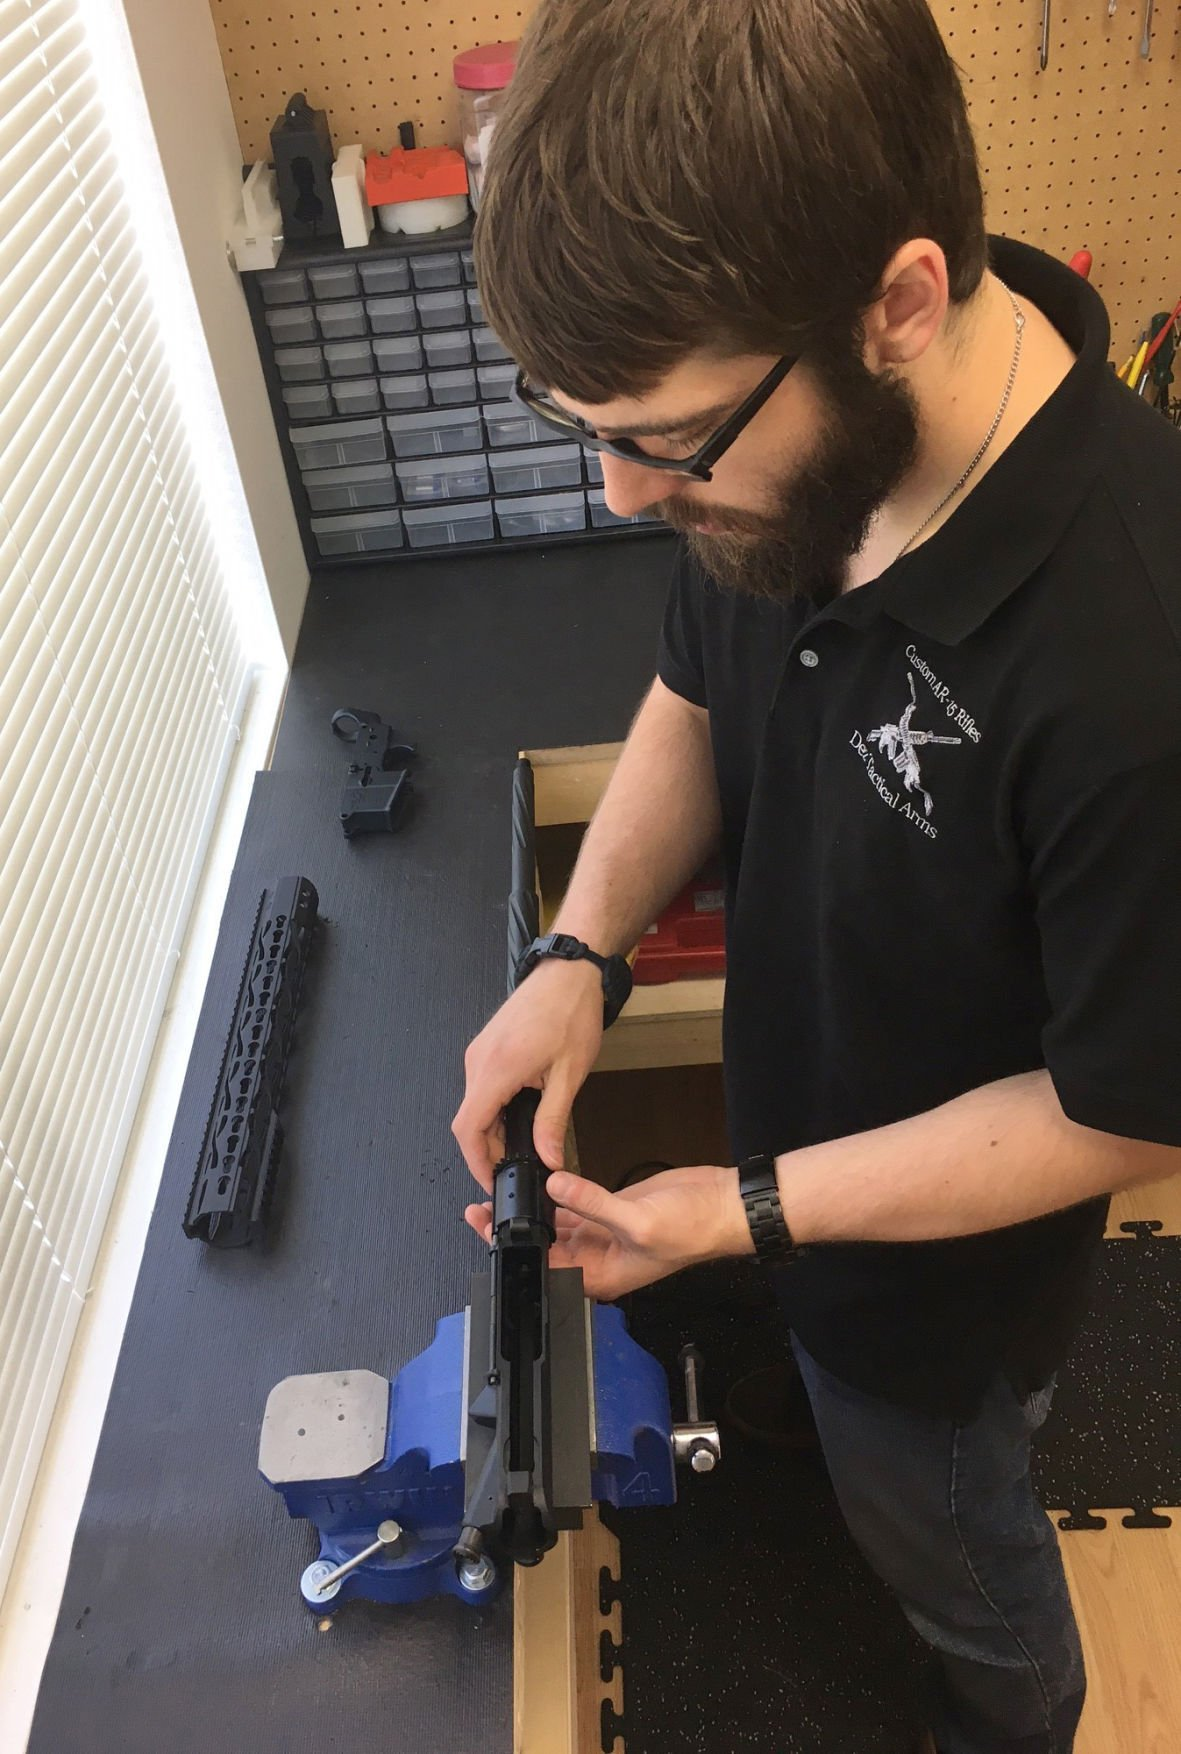 Family brings successful gun business to downtown Dells